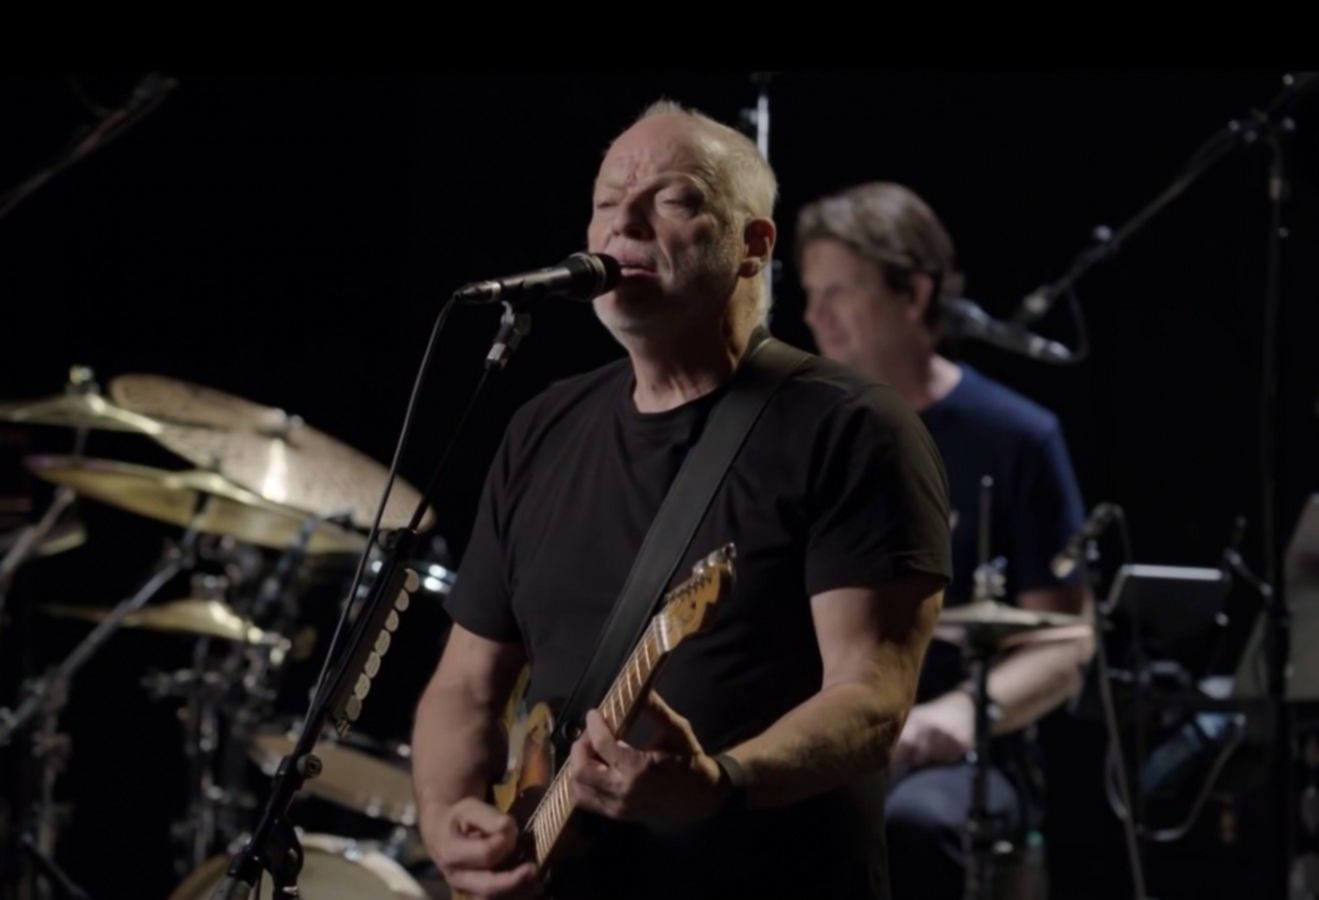 News: Seht hier das Video zur neuen David Gilmour-Single ›Today‹